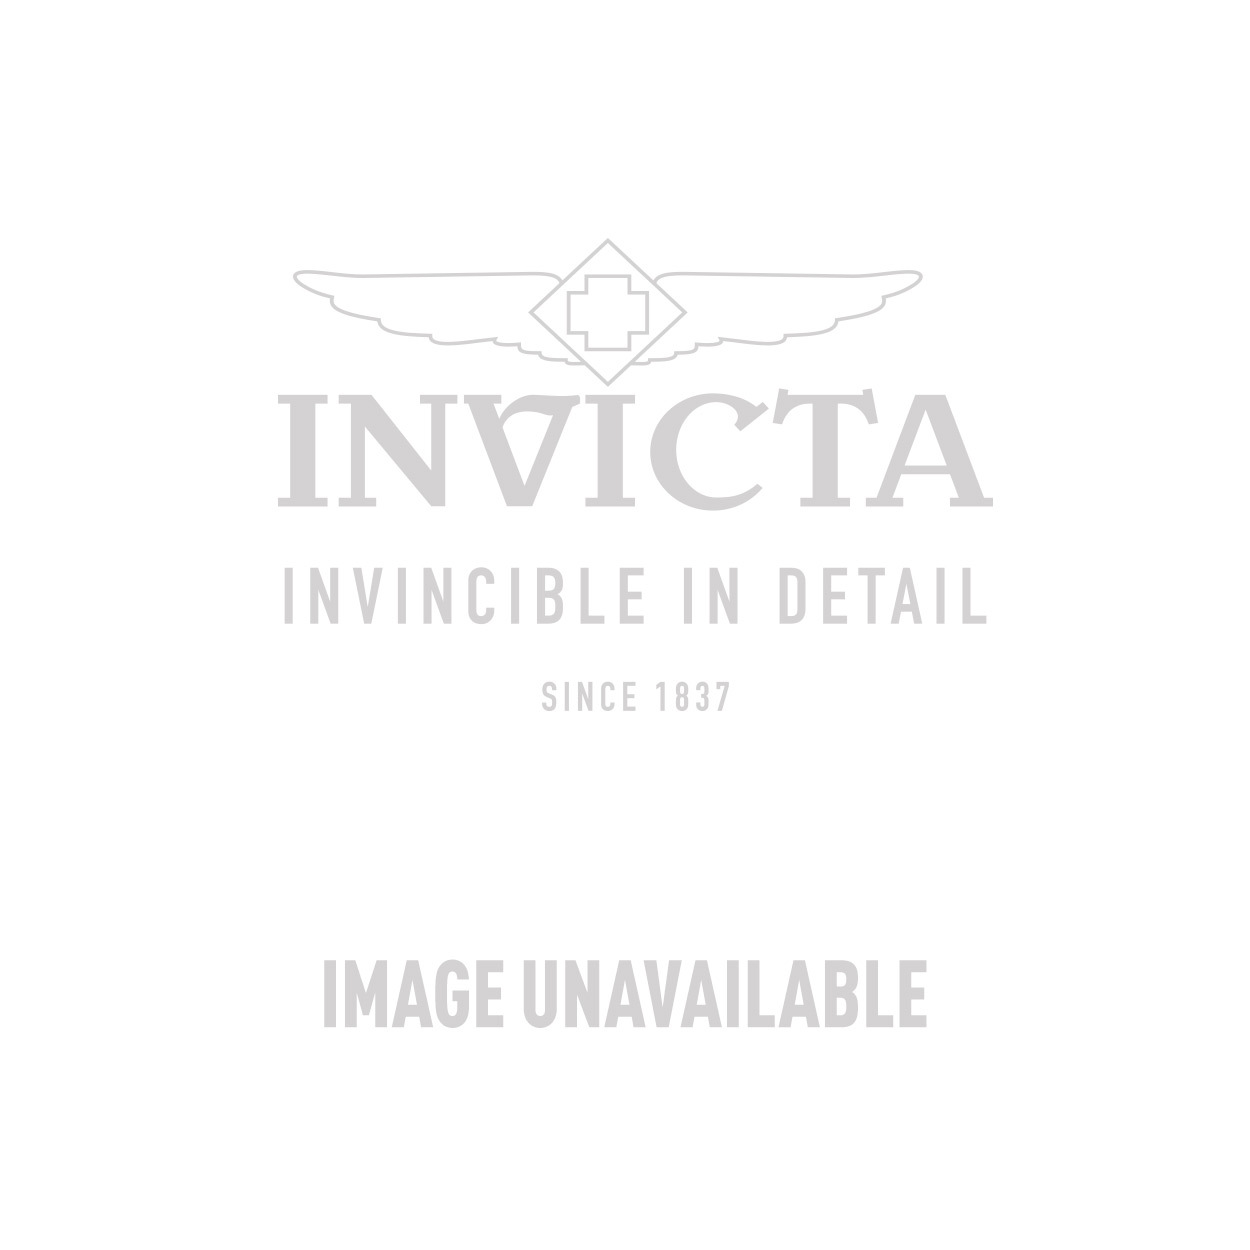 Invicta Excursion Swiss Made Quartz Watch - Gold, Stainless Steel case Stainless Steel band - Model 17860